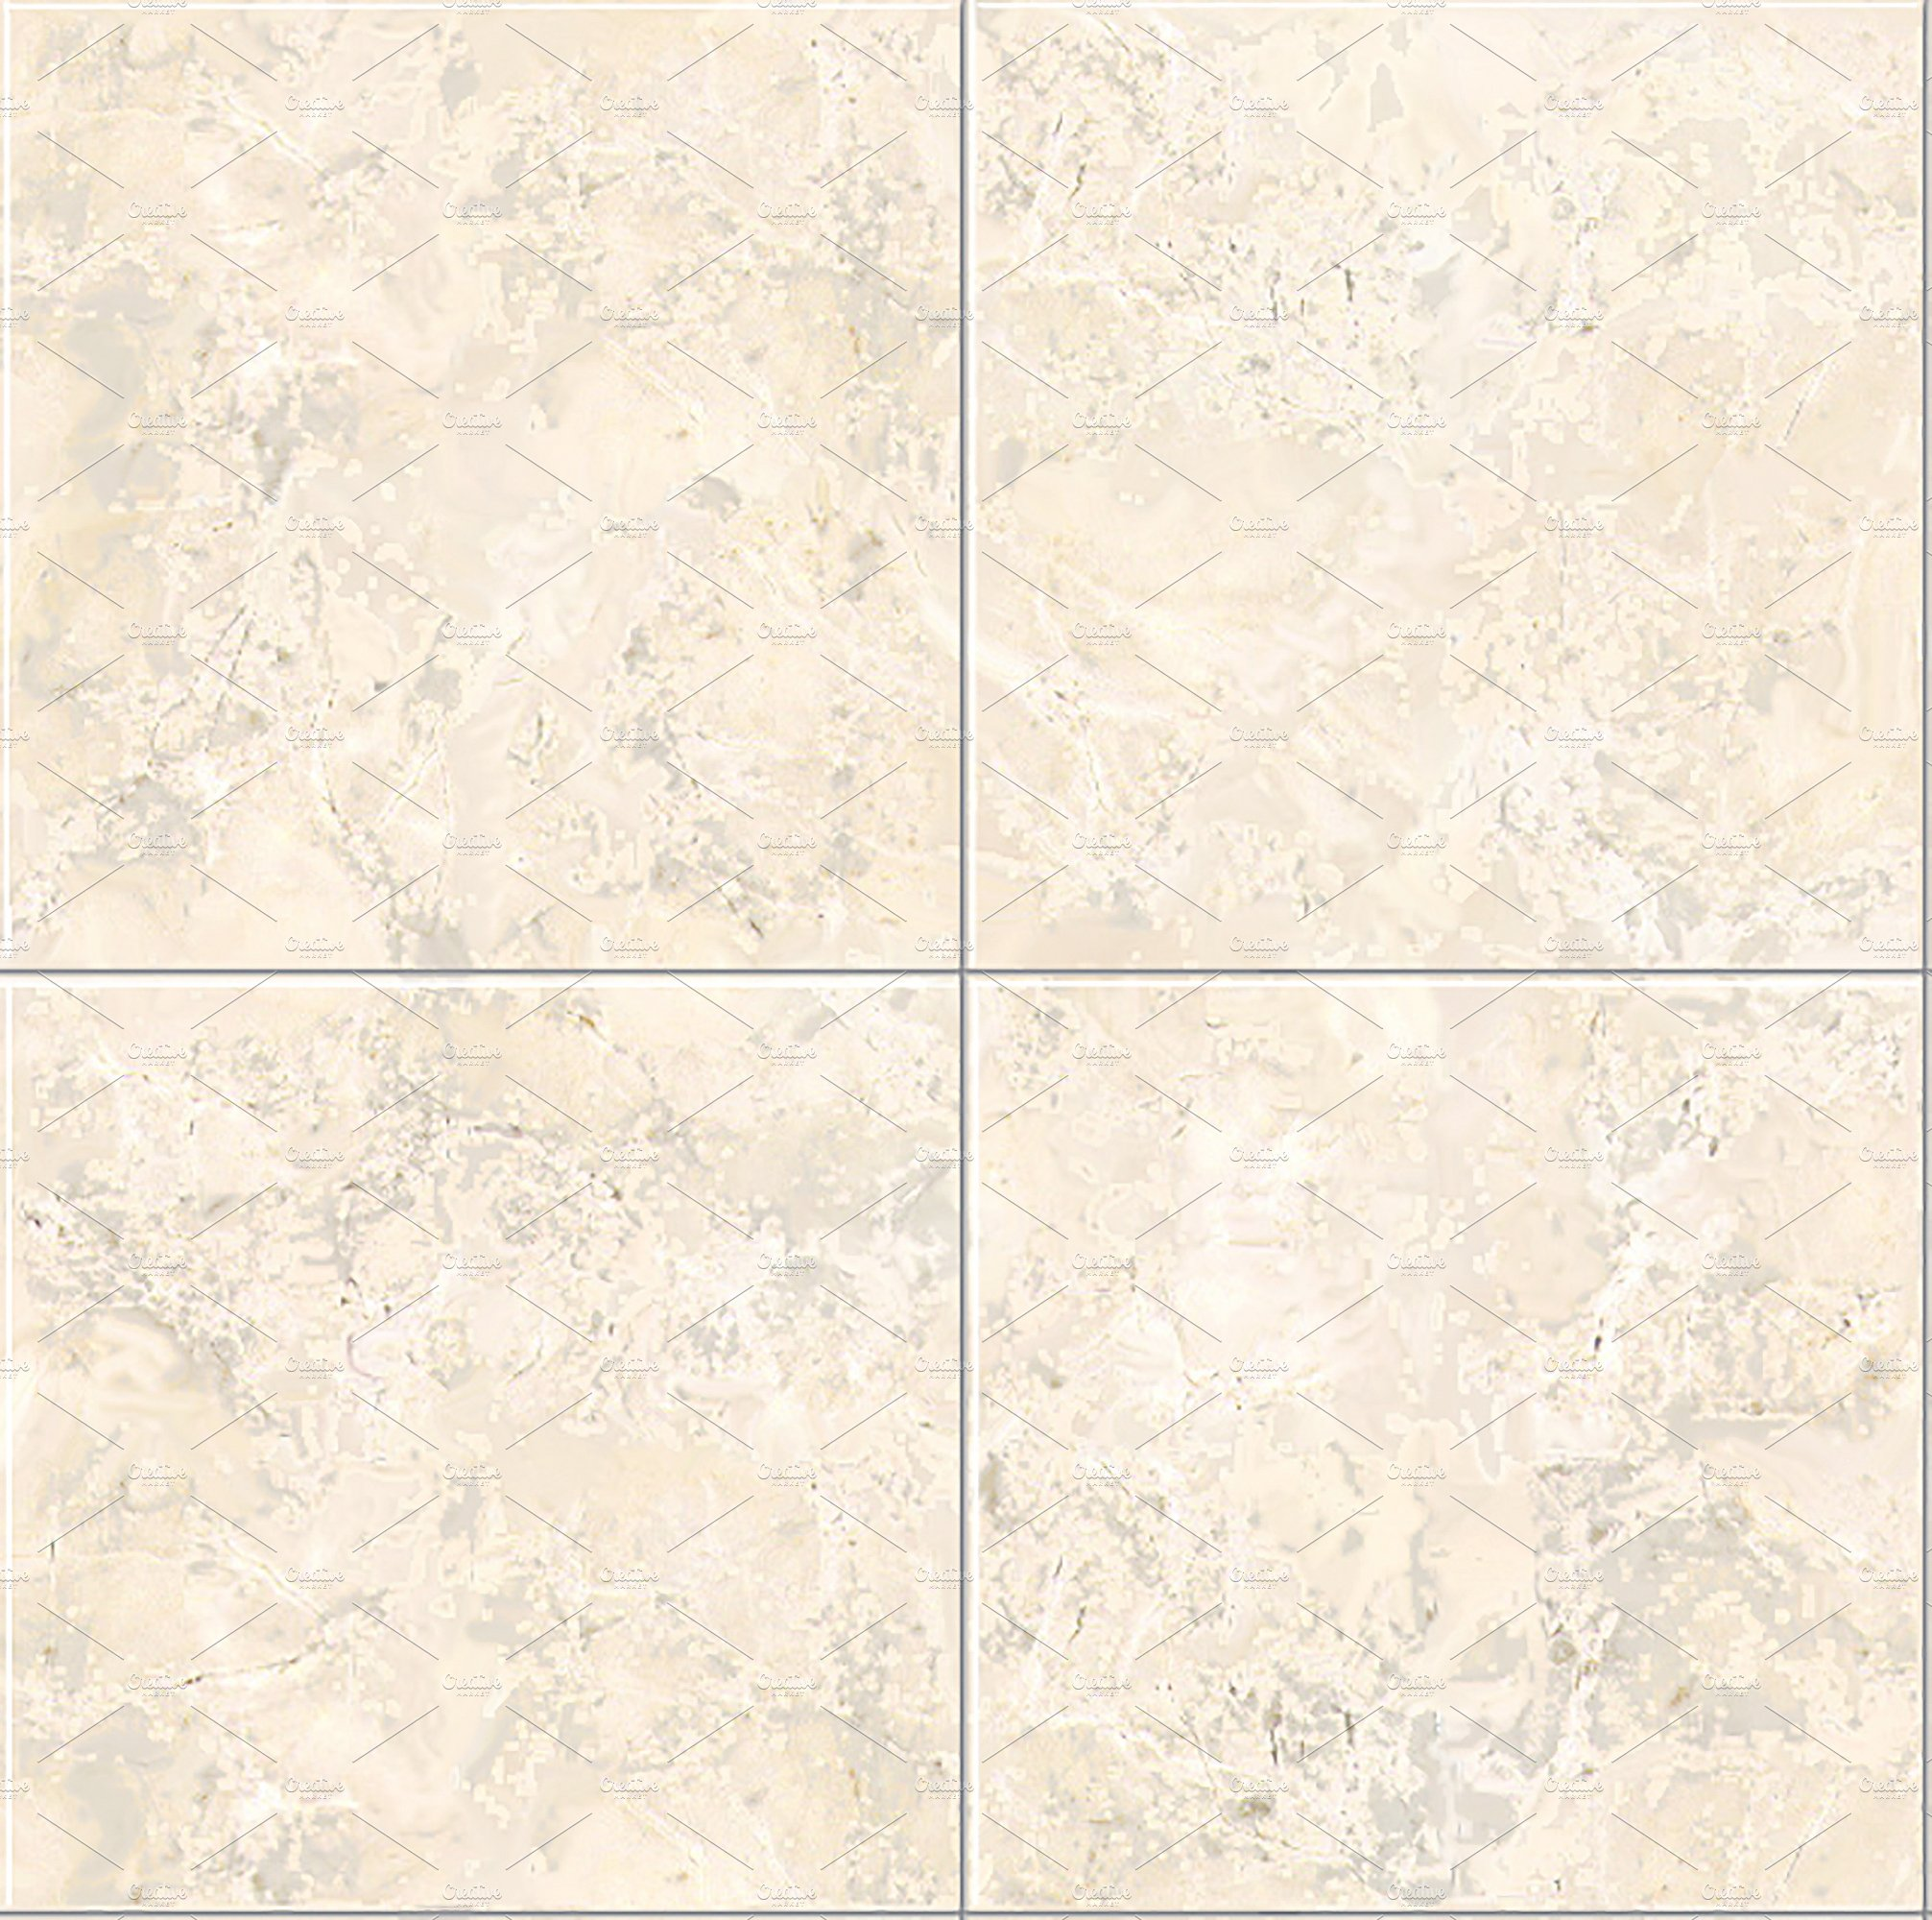 Ceramic Tile Bump Map For 3d Graphic Textures Creative Market